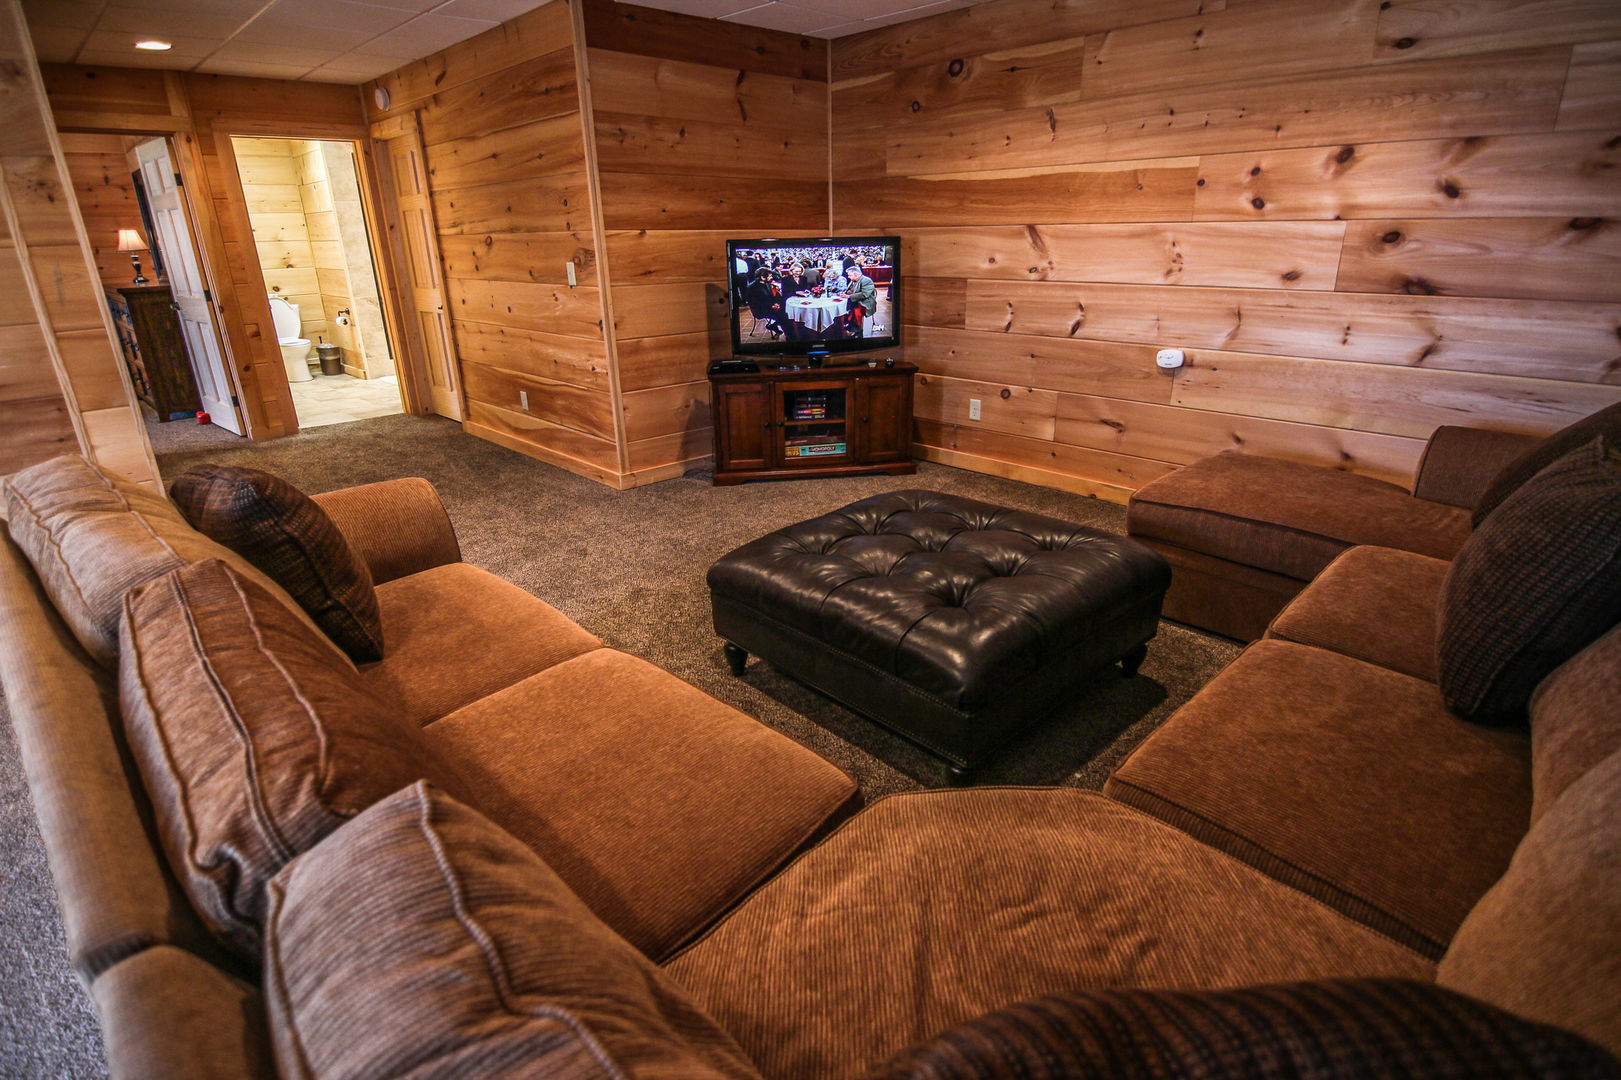 Second living area with sectional and TV